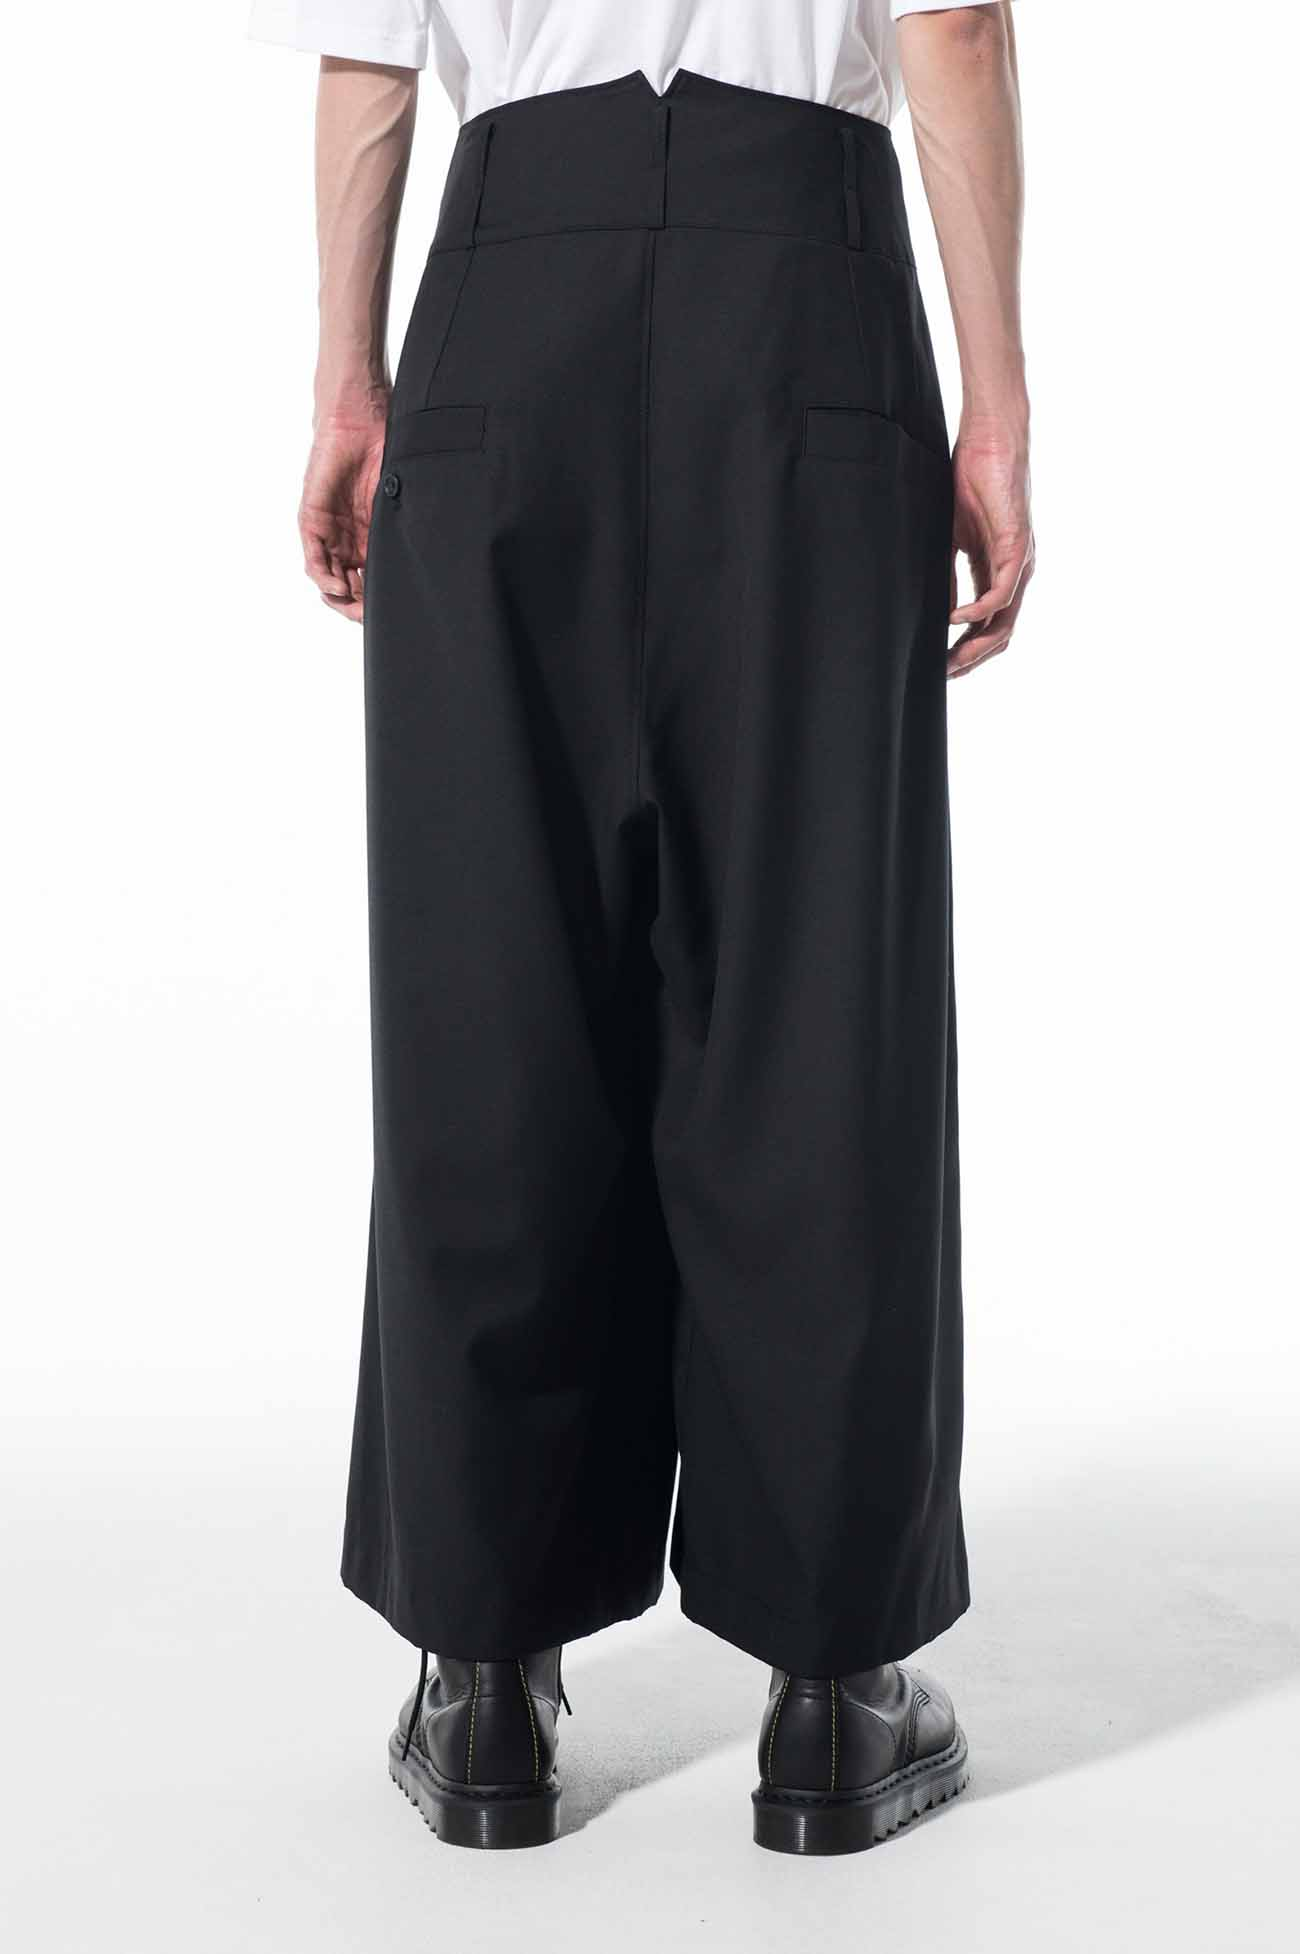 T/W Gabardine Washable Two Tuck High Waist Buggy Wide Pants